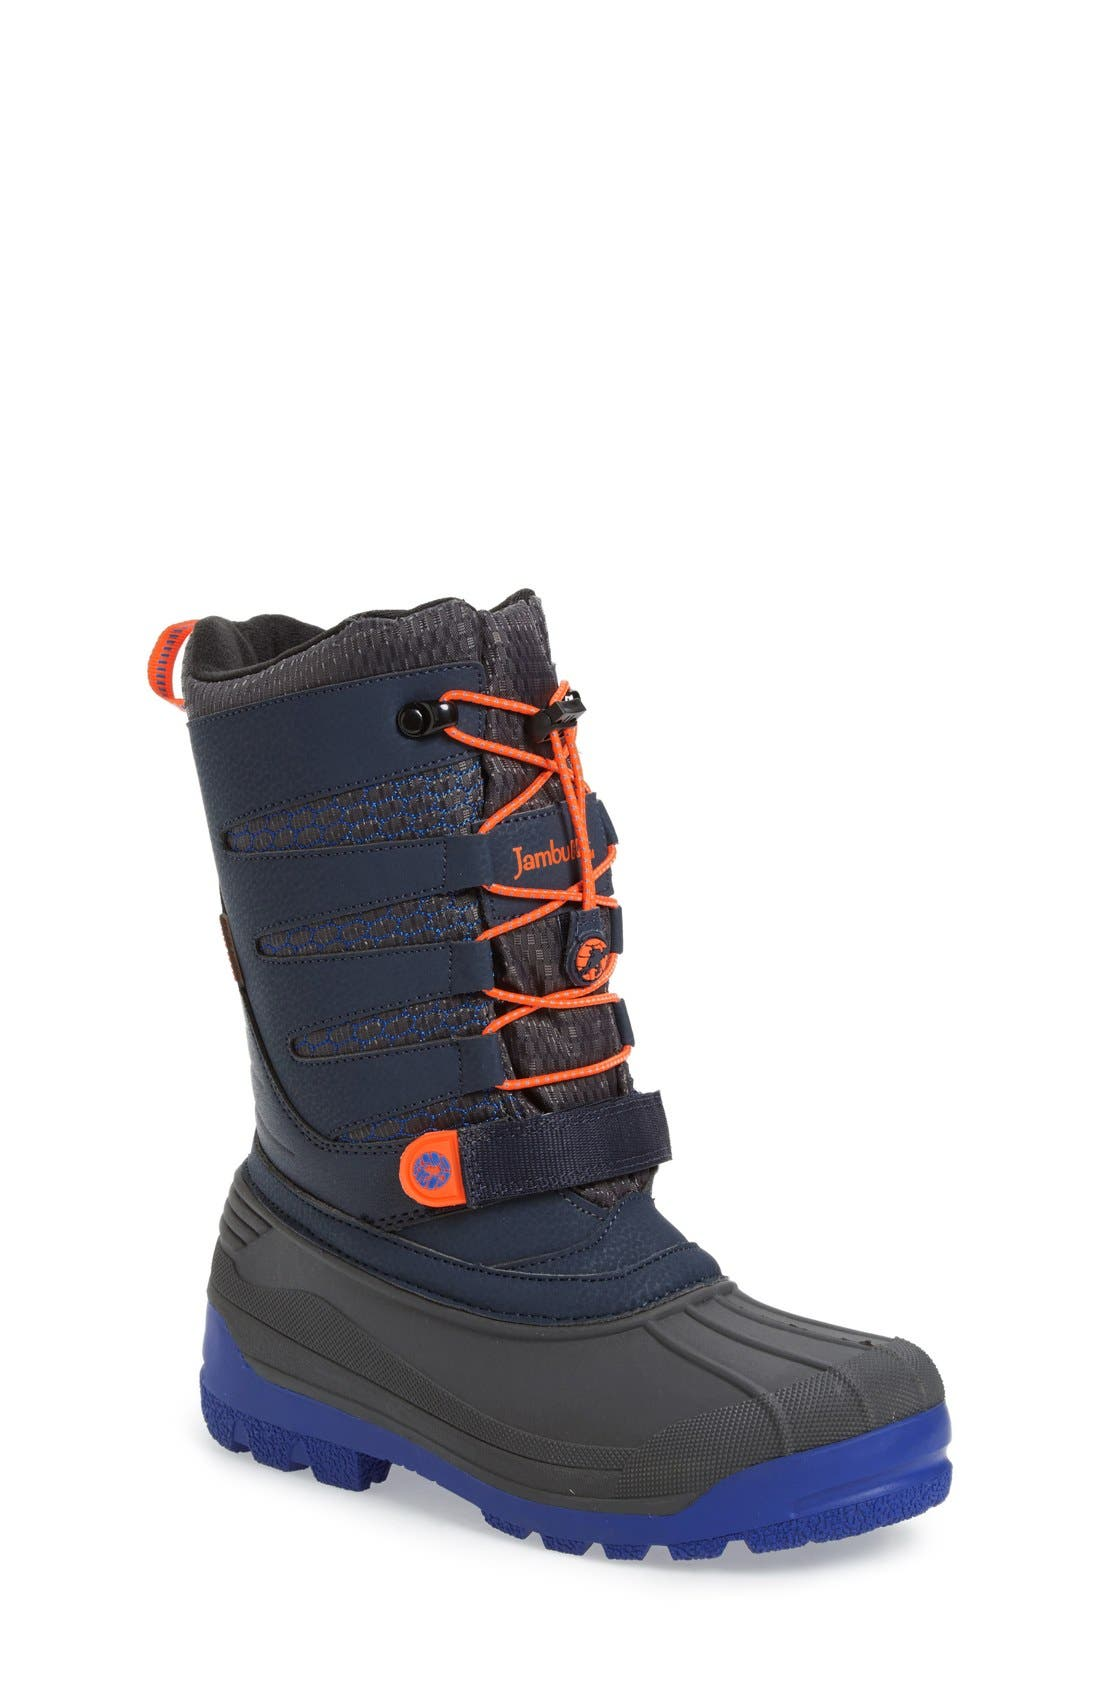 'Venom' Waterproof Insulated Snow Boot,                         Main,                         color, Navy/ Orange